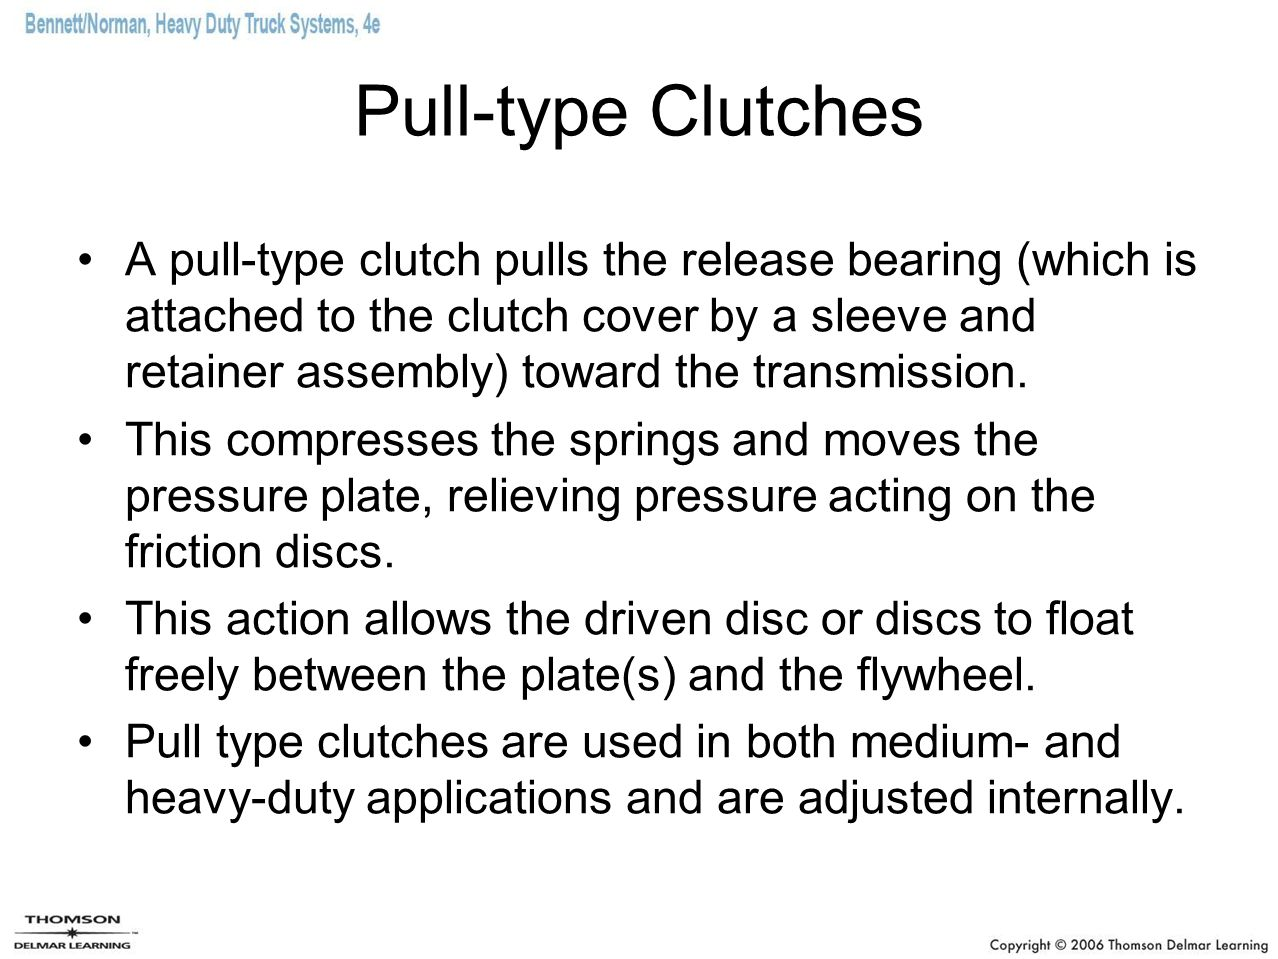 Pull-type Clutches